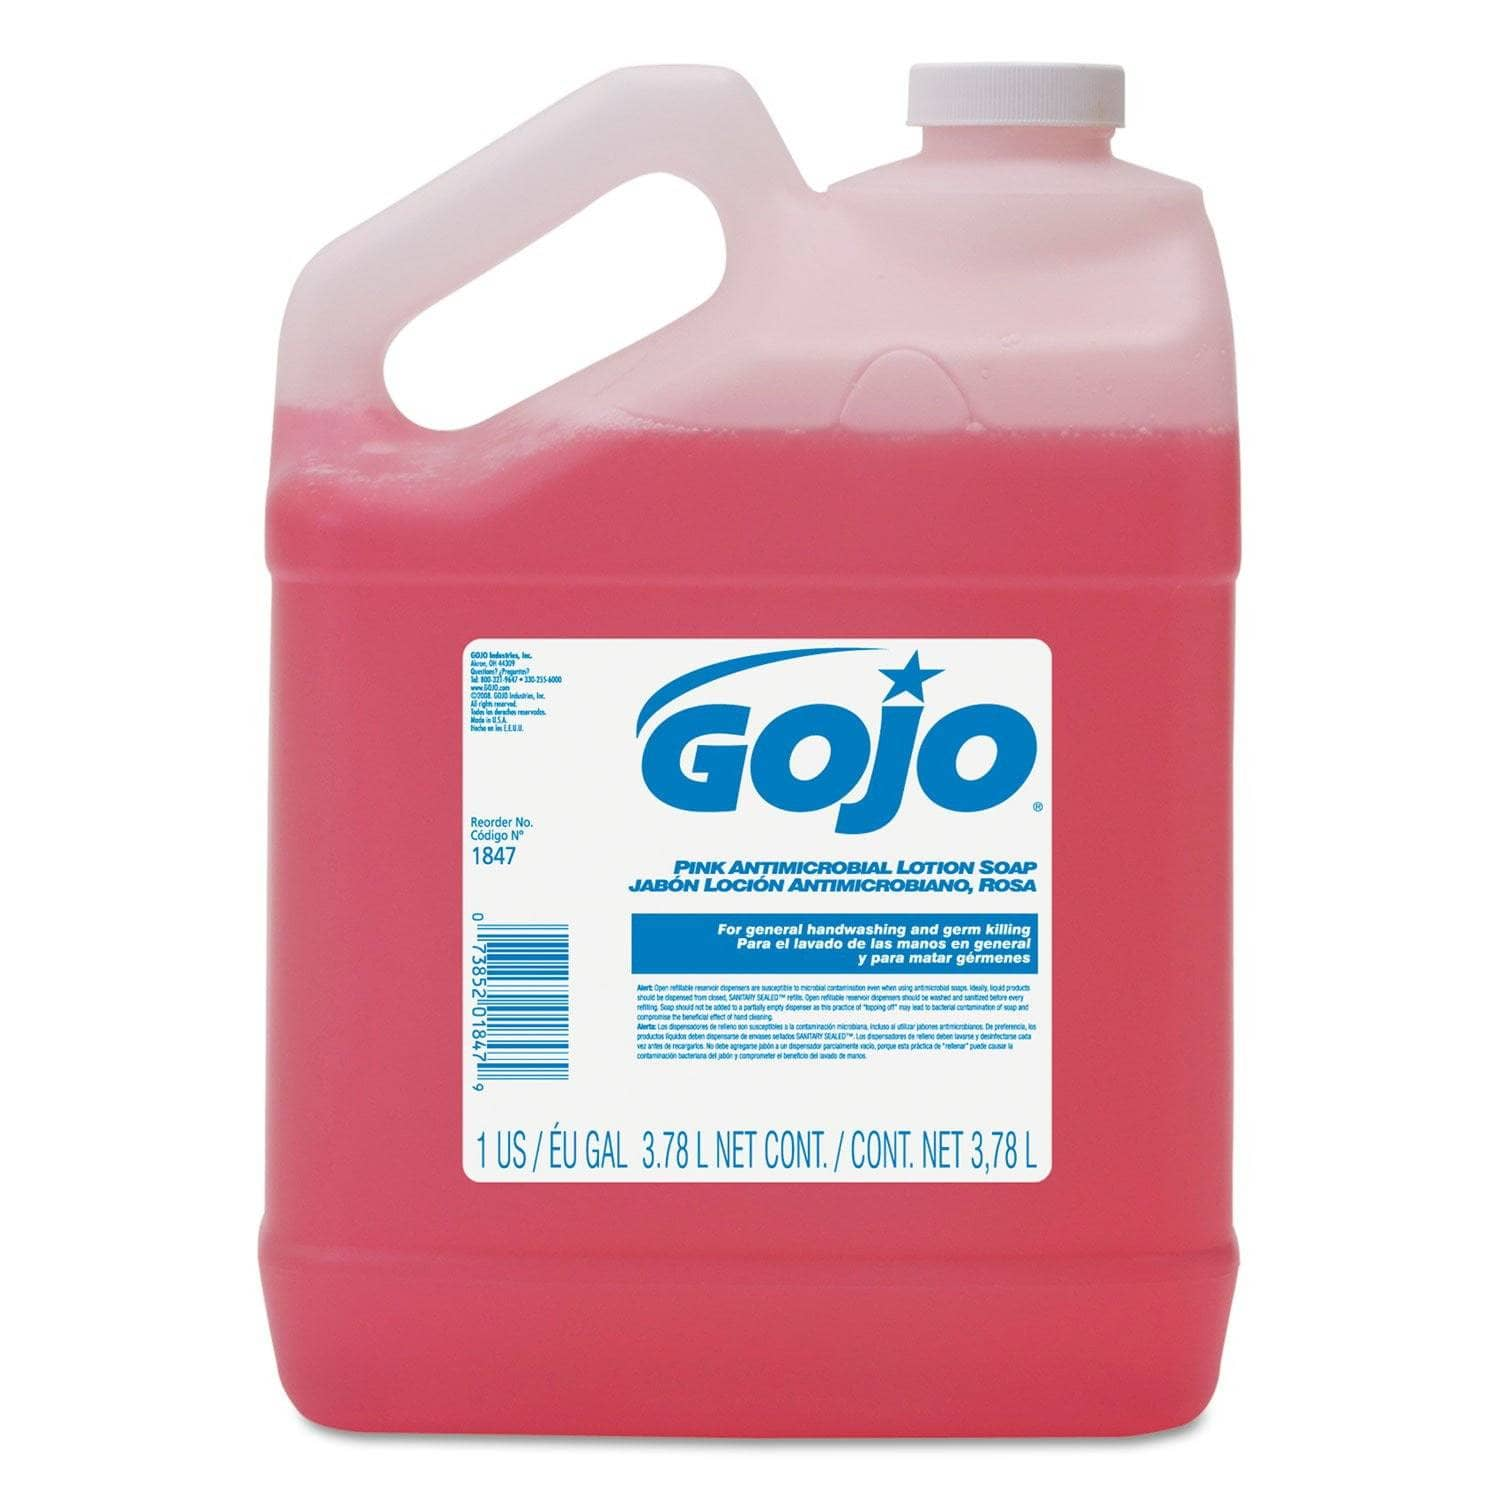 Gojo Antimicrobial Lotion Soap, Floral Balsam Scent, 1 Gal Bottle, 4/Carton - GOJ184704 - TotalRestroom.com